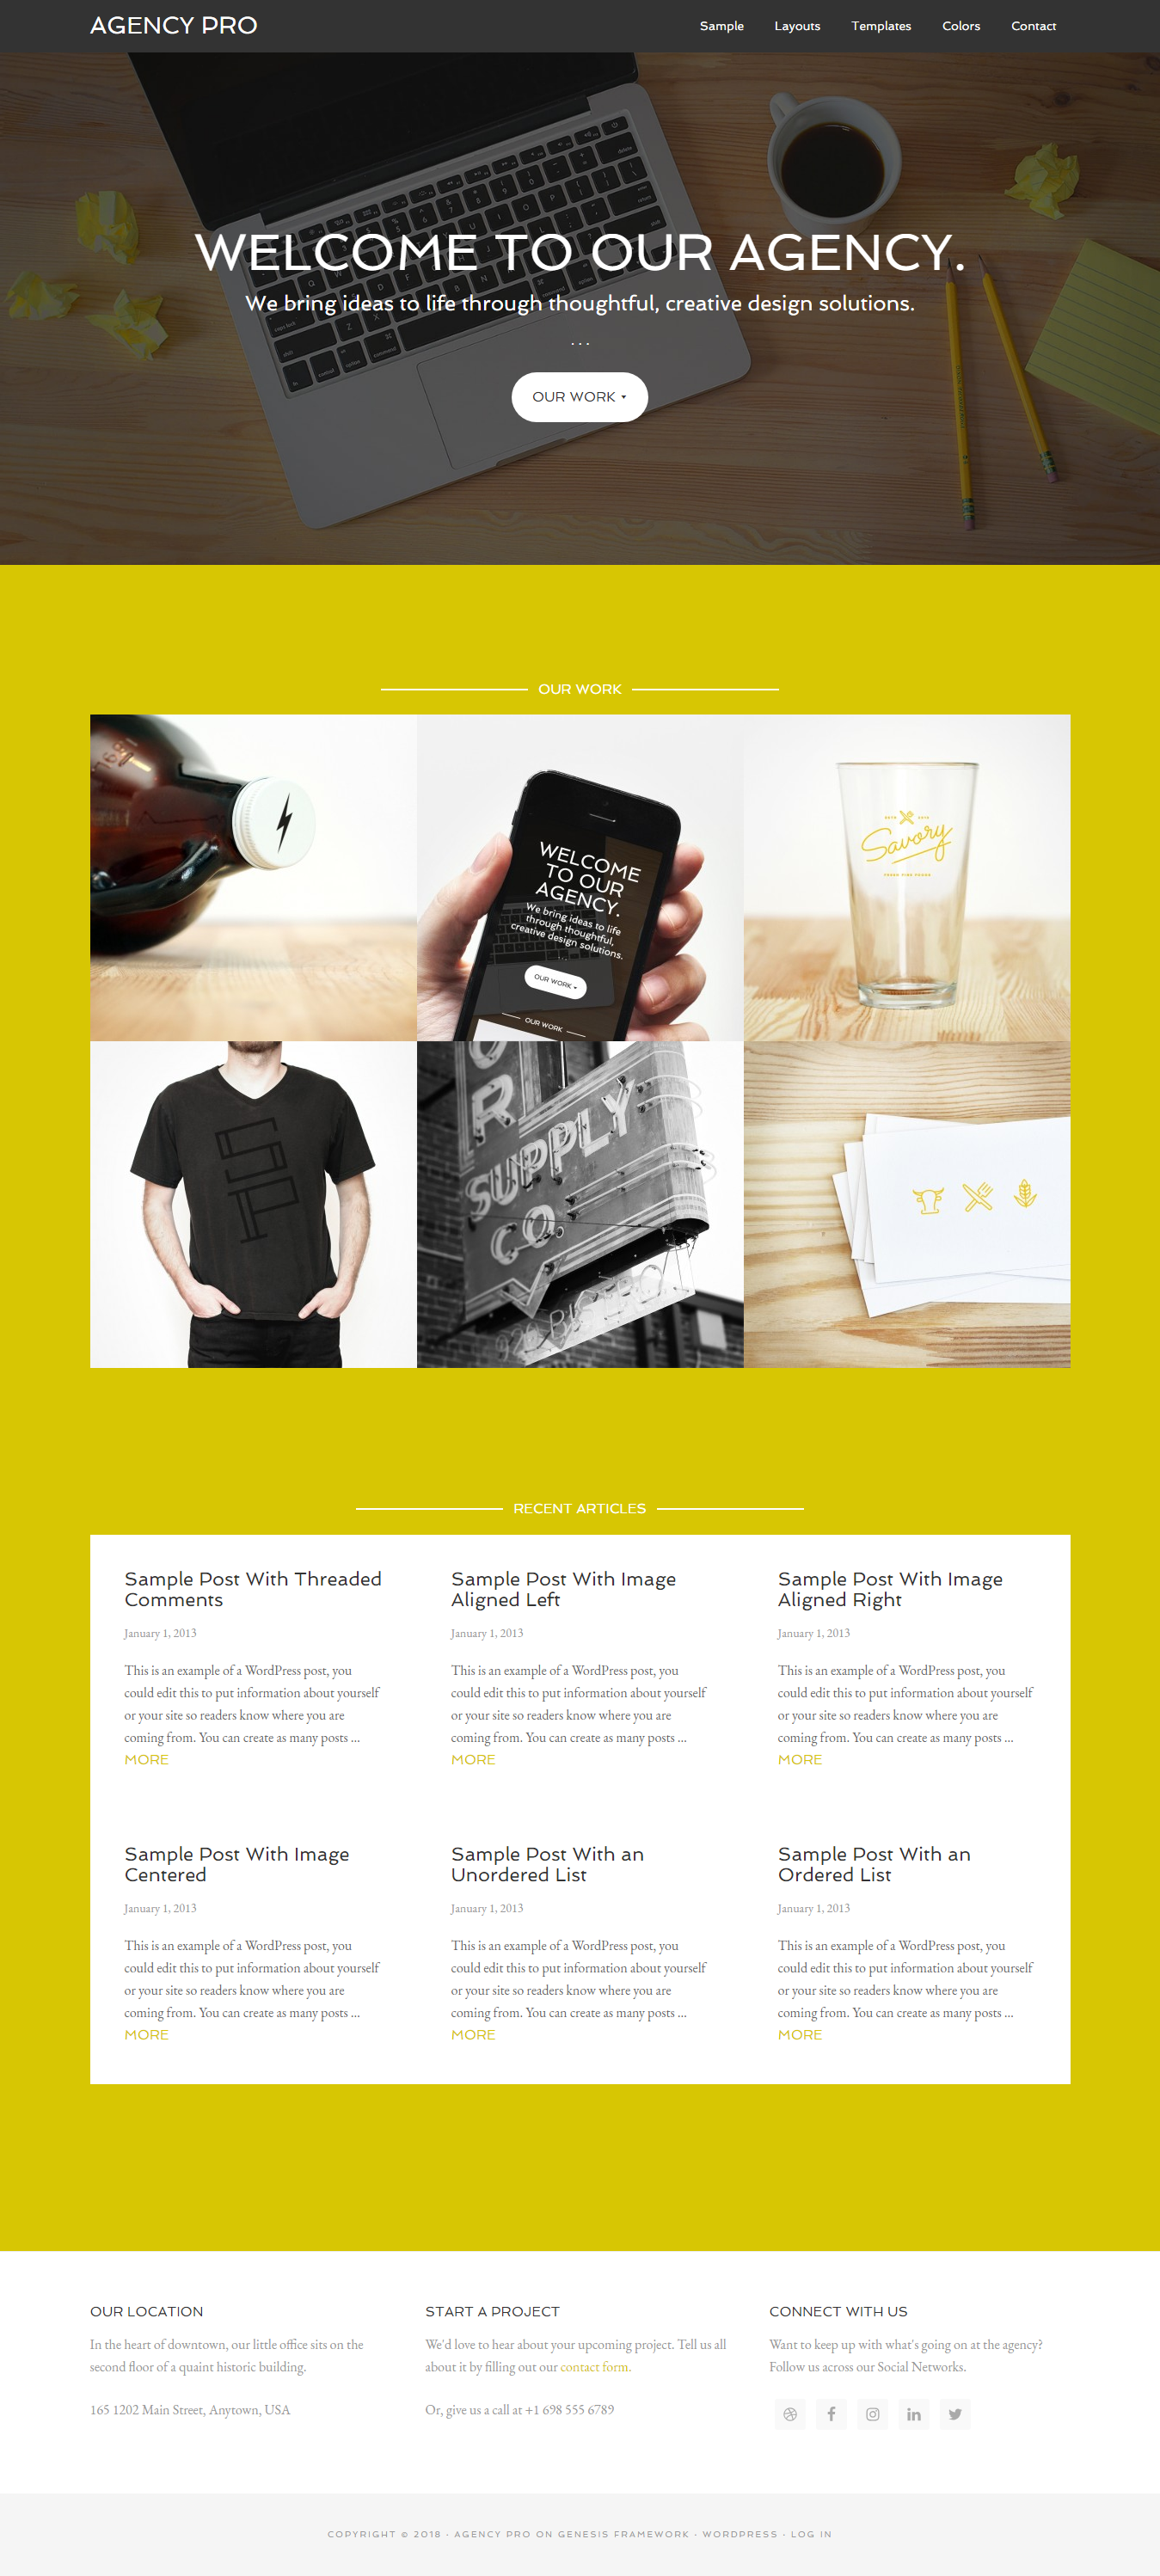 Agency Pro - Premium Agency WordPress Themes and Templates